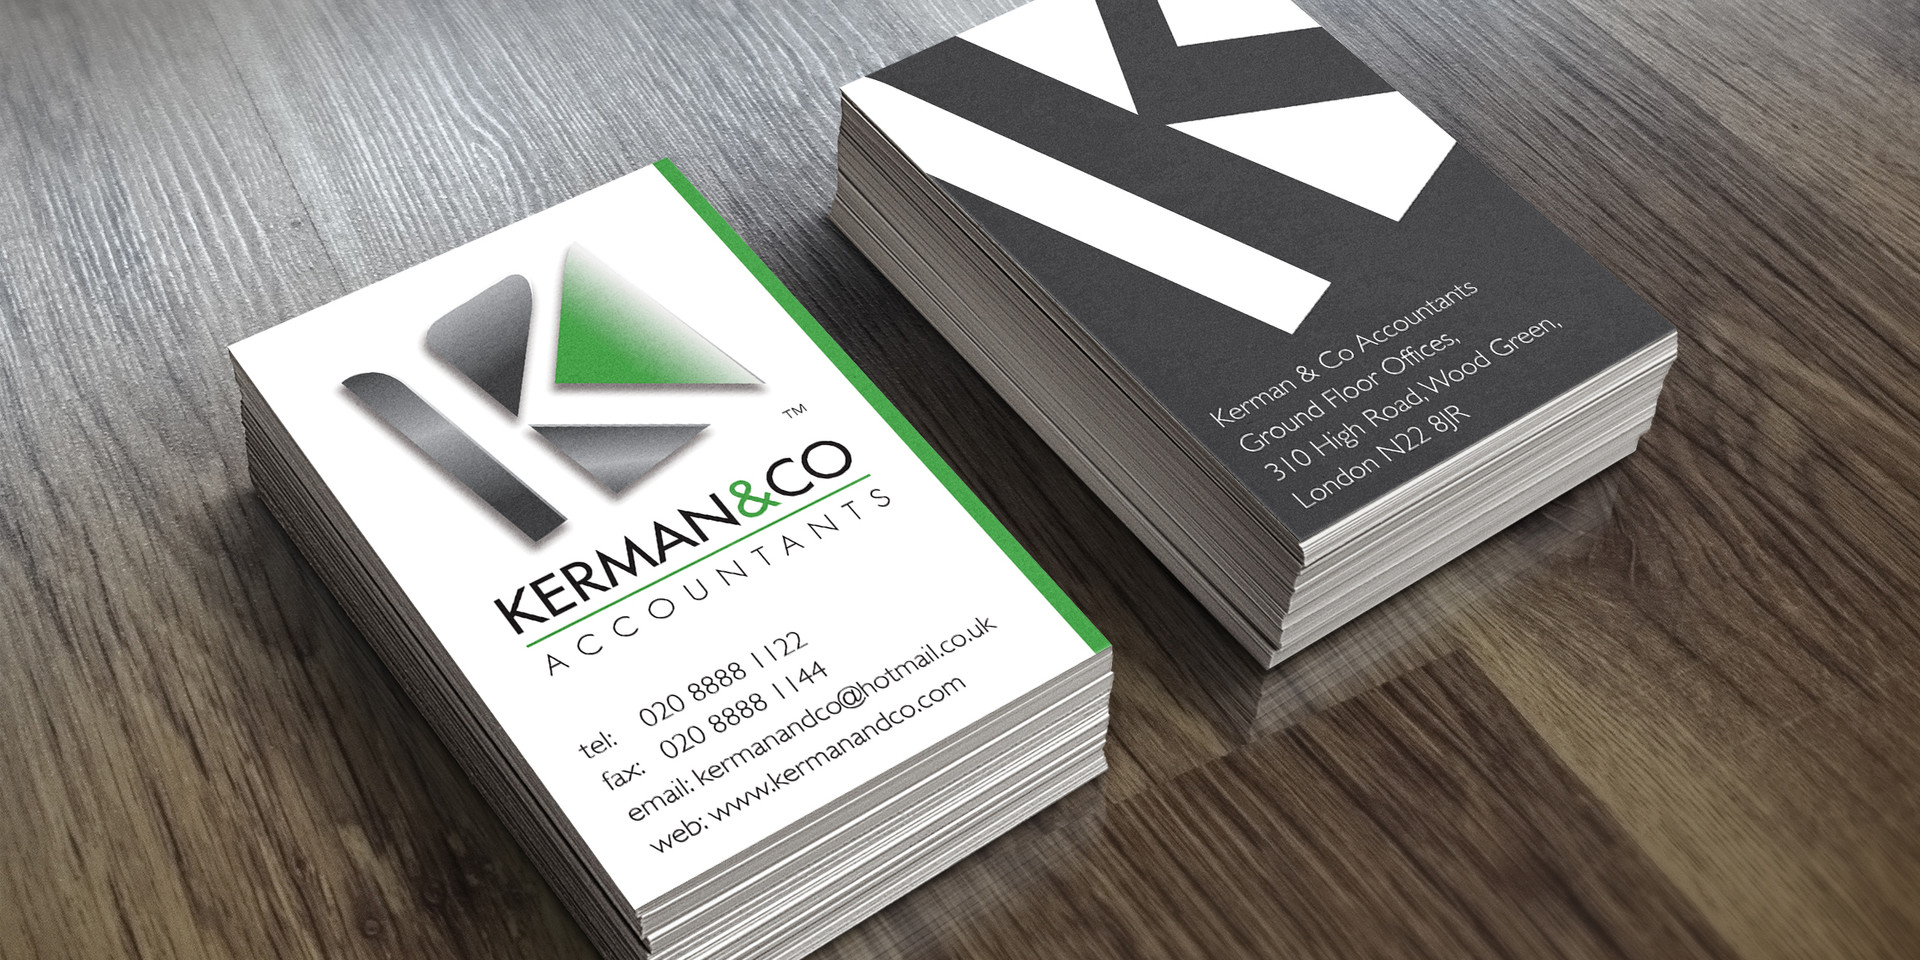 Kerman Business Card Mock-Up.jpg